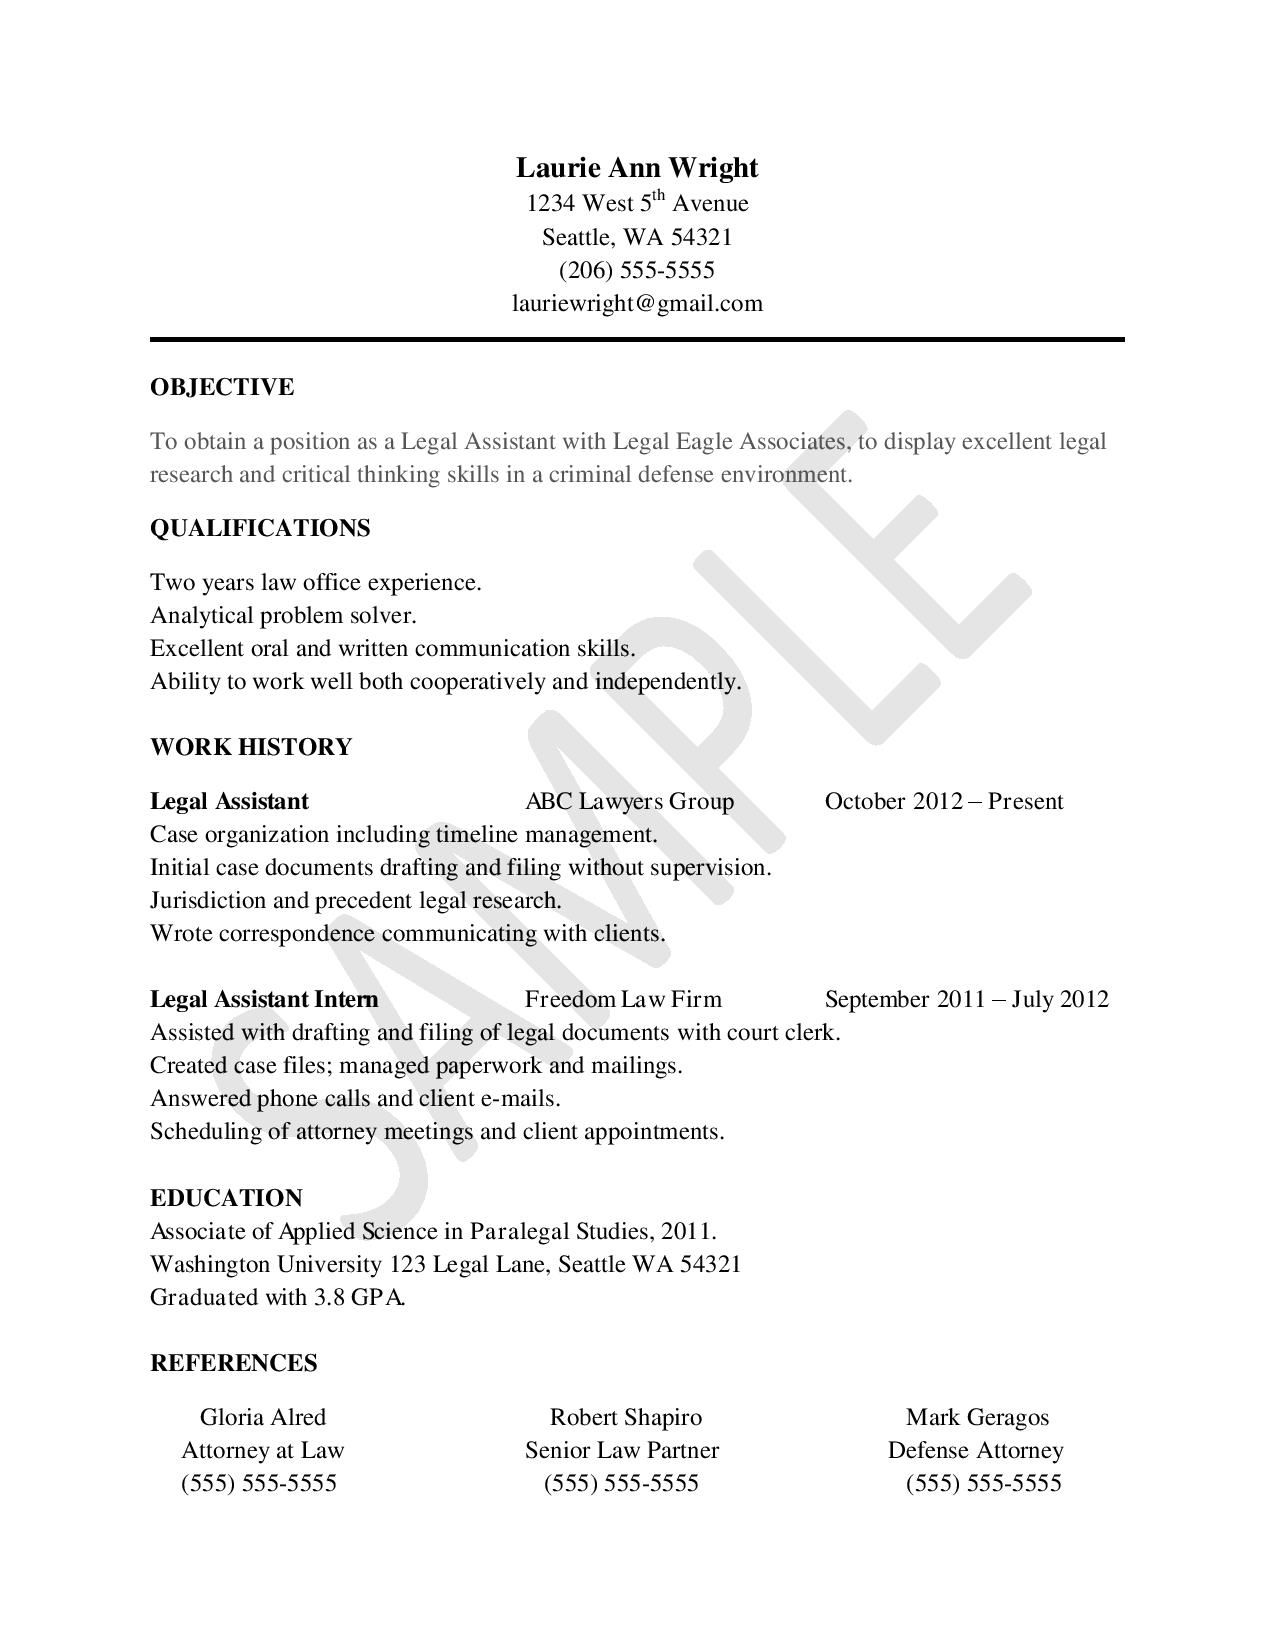 Finance Resume Objective Statements Examples    Http://resumesdesign.com/finance Resume Objective Statements Examples/ |  FREE RESUME SAMPLE | Pinterest ...  Resume Samples Examples